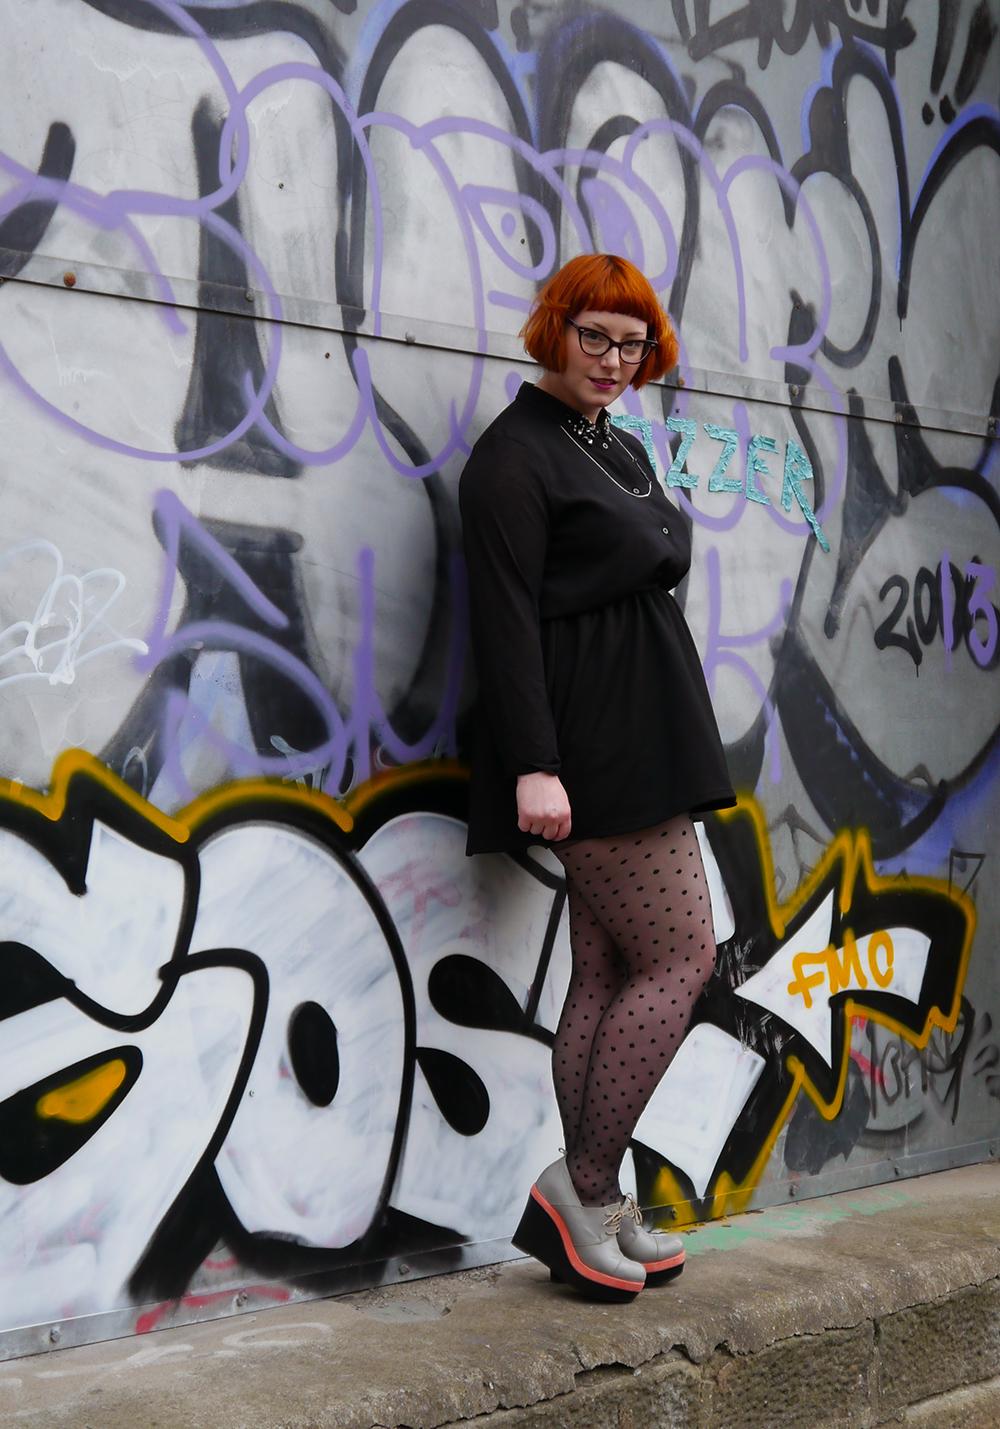 Lady Muck, Lady Muck of Whitstable, laser cut jewellery, metal jewellery, seagull necklcae. H&M shirt, jewelled collar, black skirt, polka dot tights, wedge shoes, Scottish blogger, red head, ginger bob, micro bob